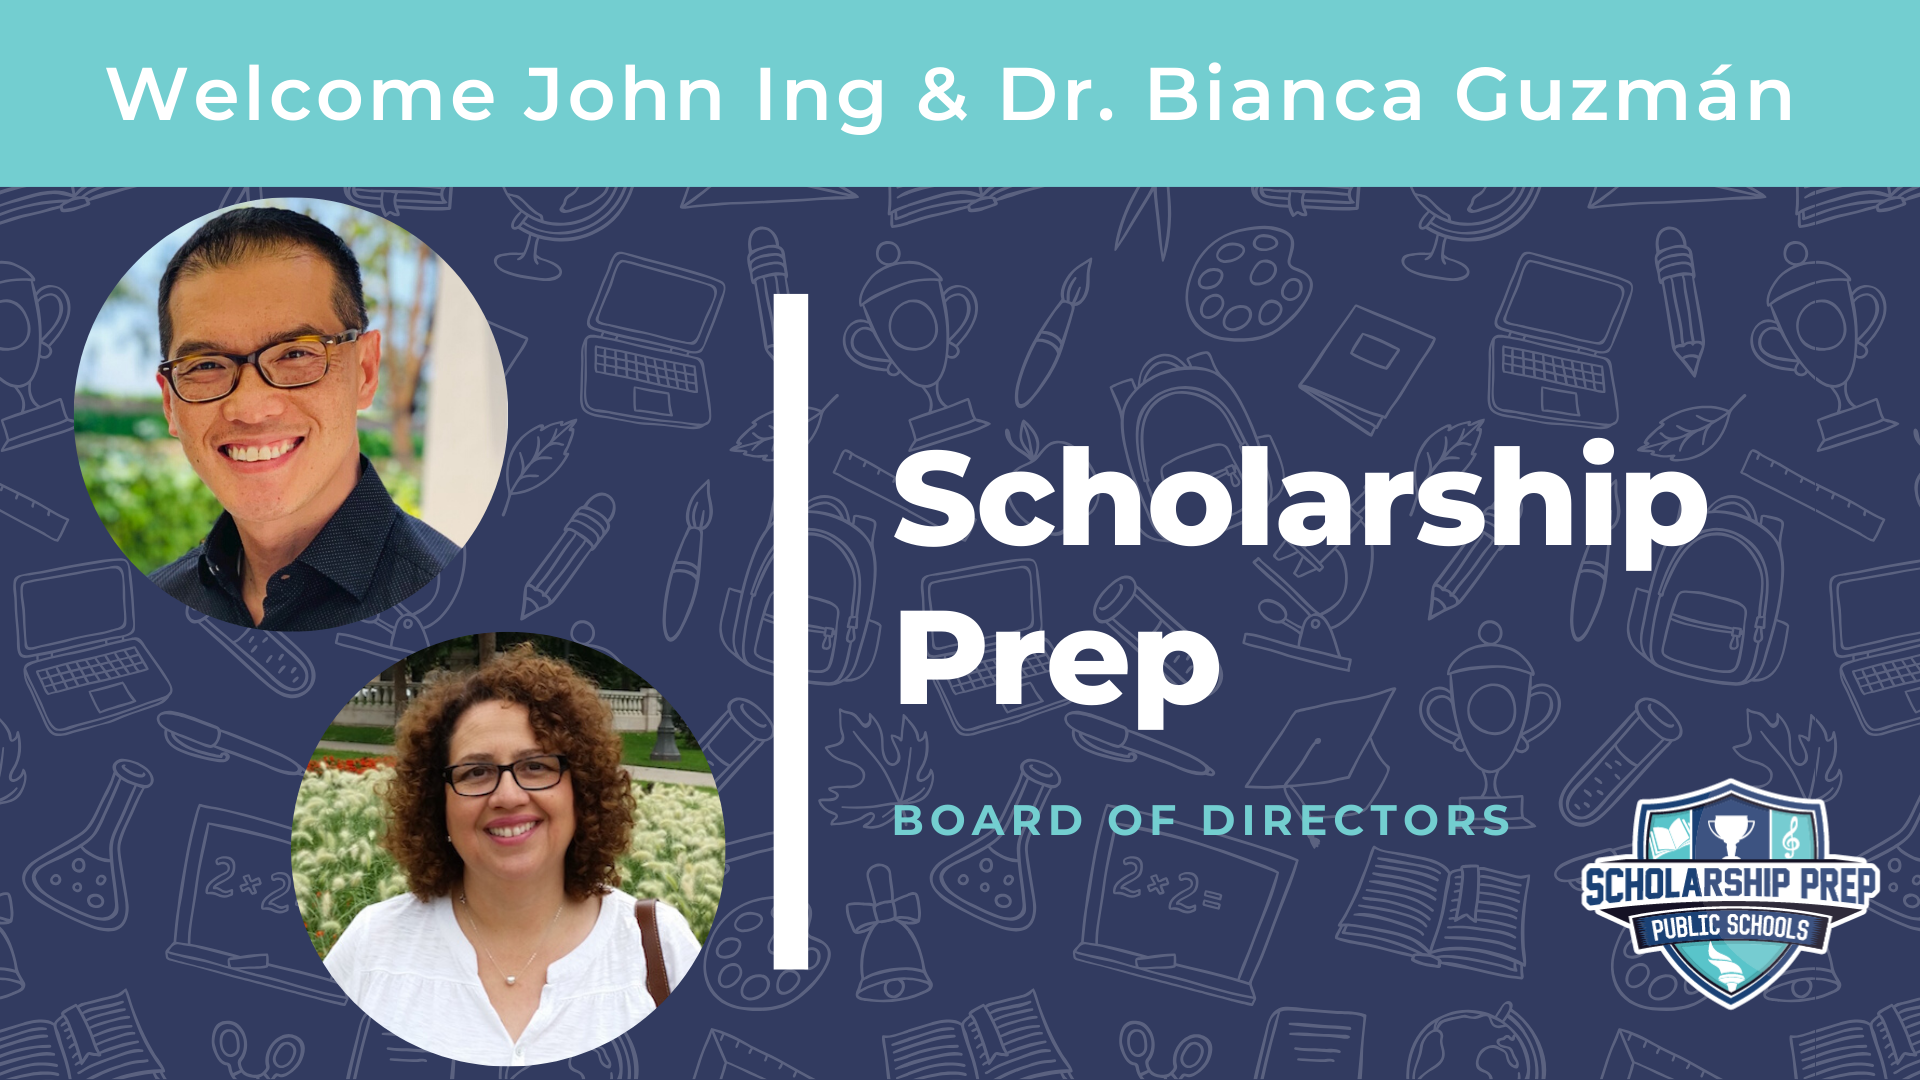 Scholarship Prep Welcomes John Ing and Dr. Bianca Guzmán to its Board of Directors